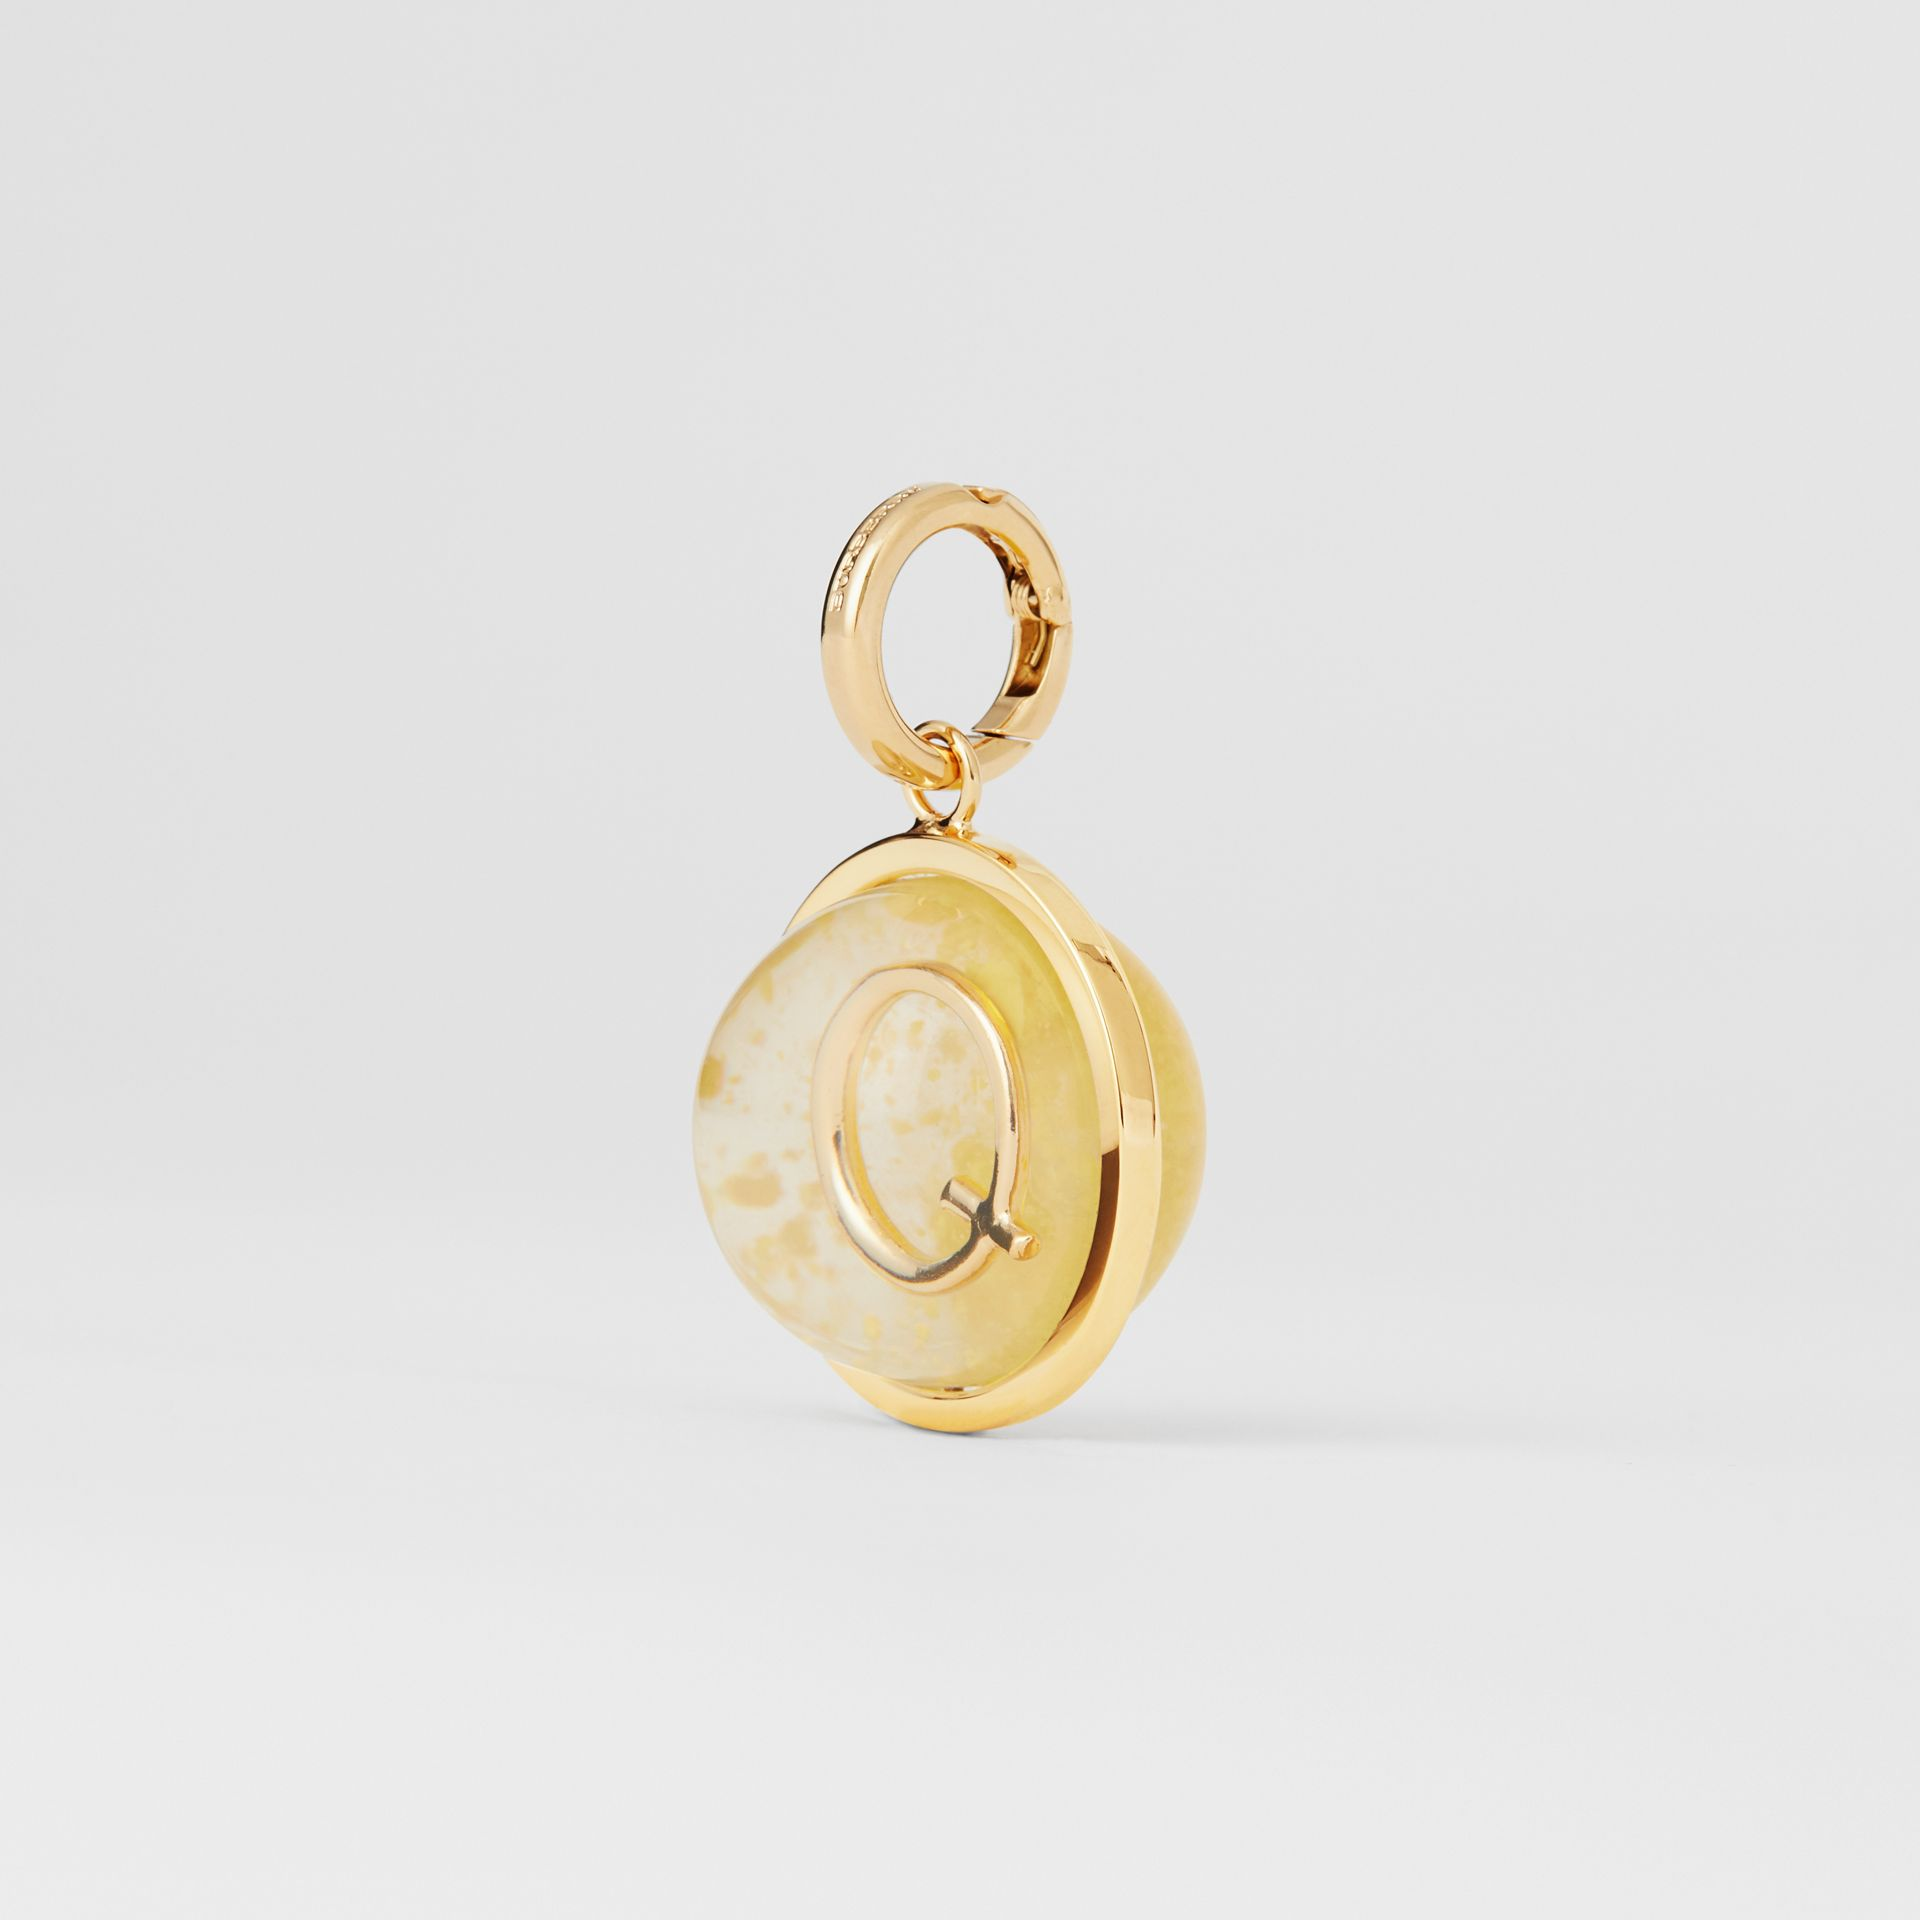 Marbled Resin 'Q' Alphabet Charm in Gold/mimosa - Women | Burberry Singapore - gallery image 4